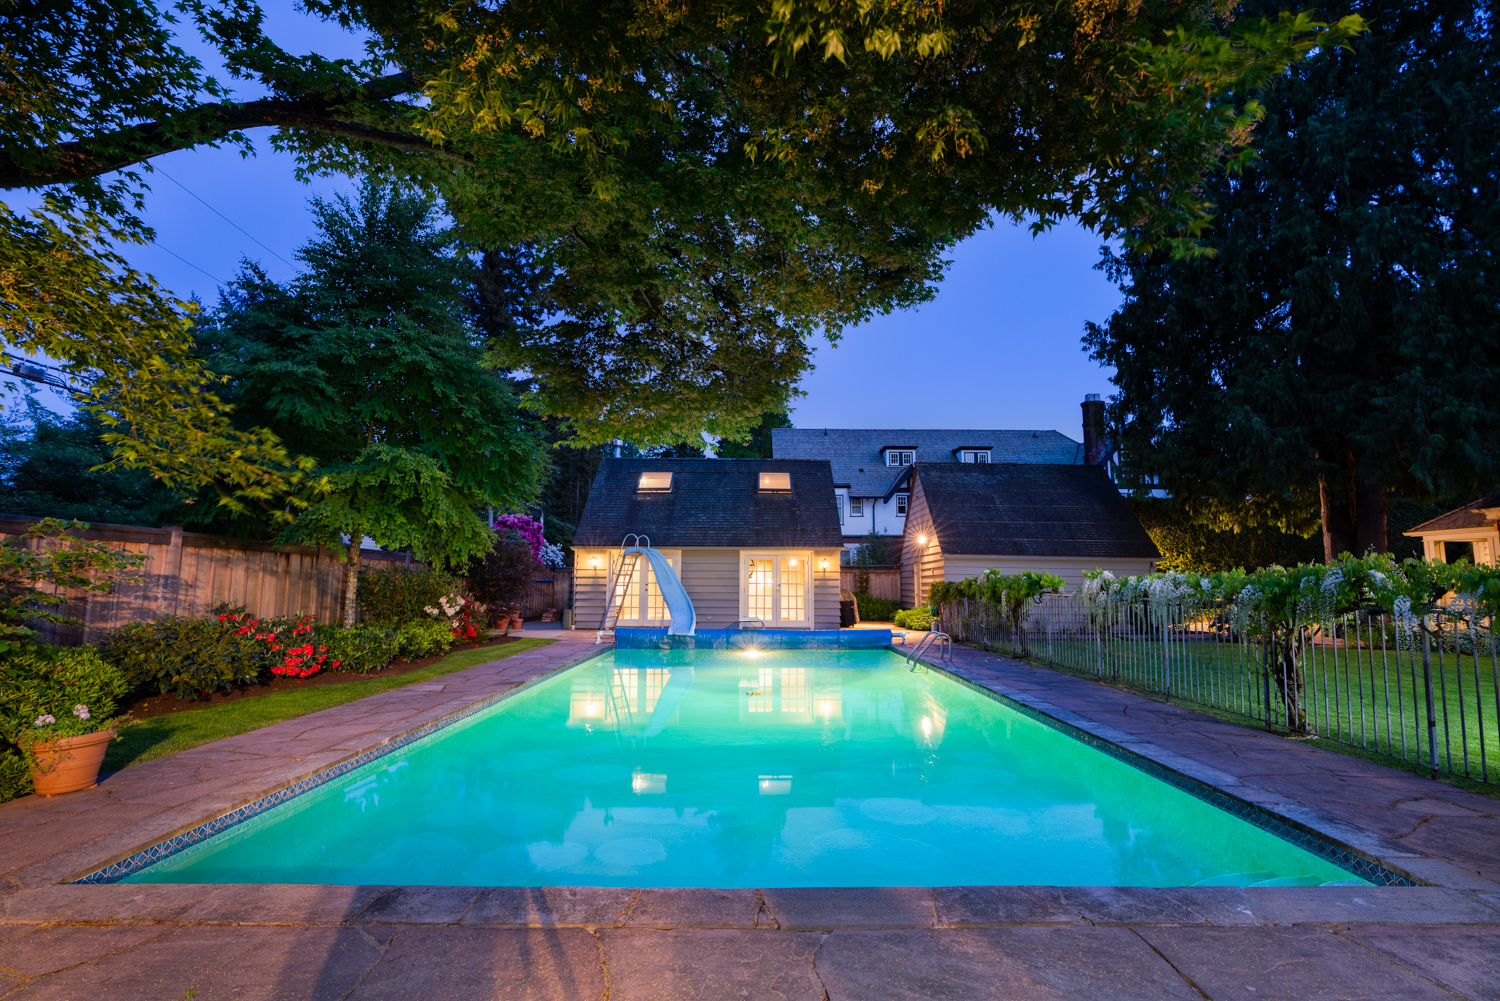 Outdoor Pool and Pool House - Shaughnessy - 5476 Angus Dr, Vancouver, BC V6M 3N4, Canada